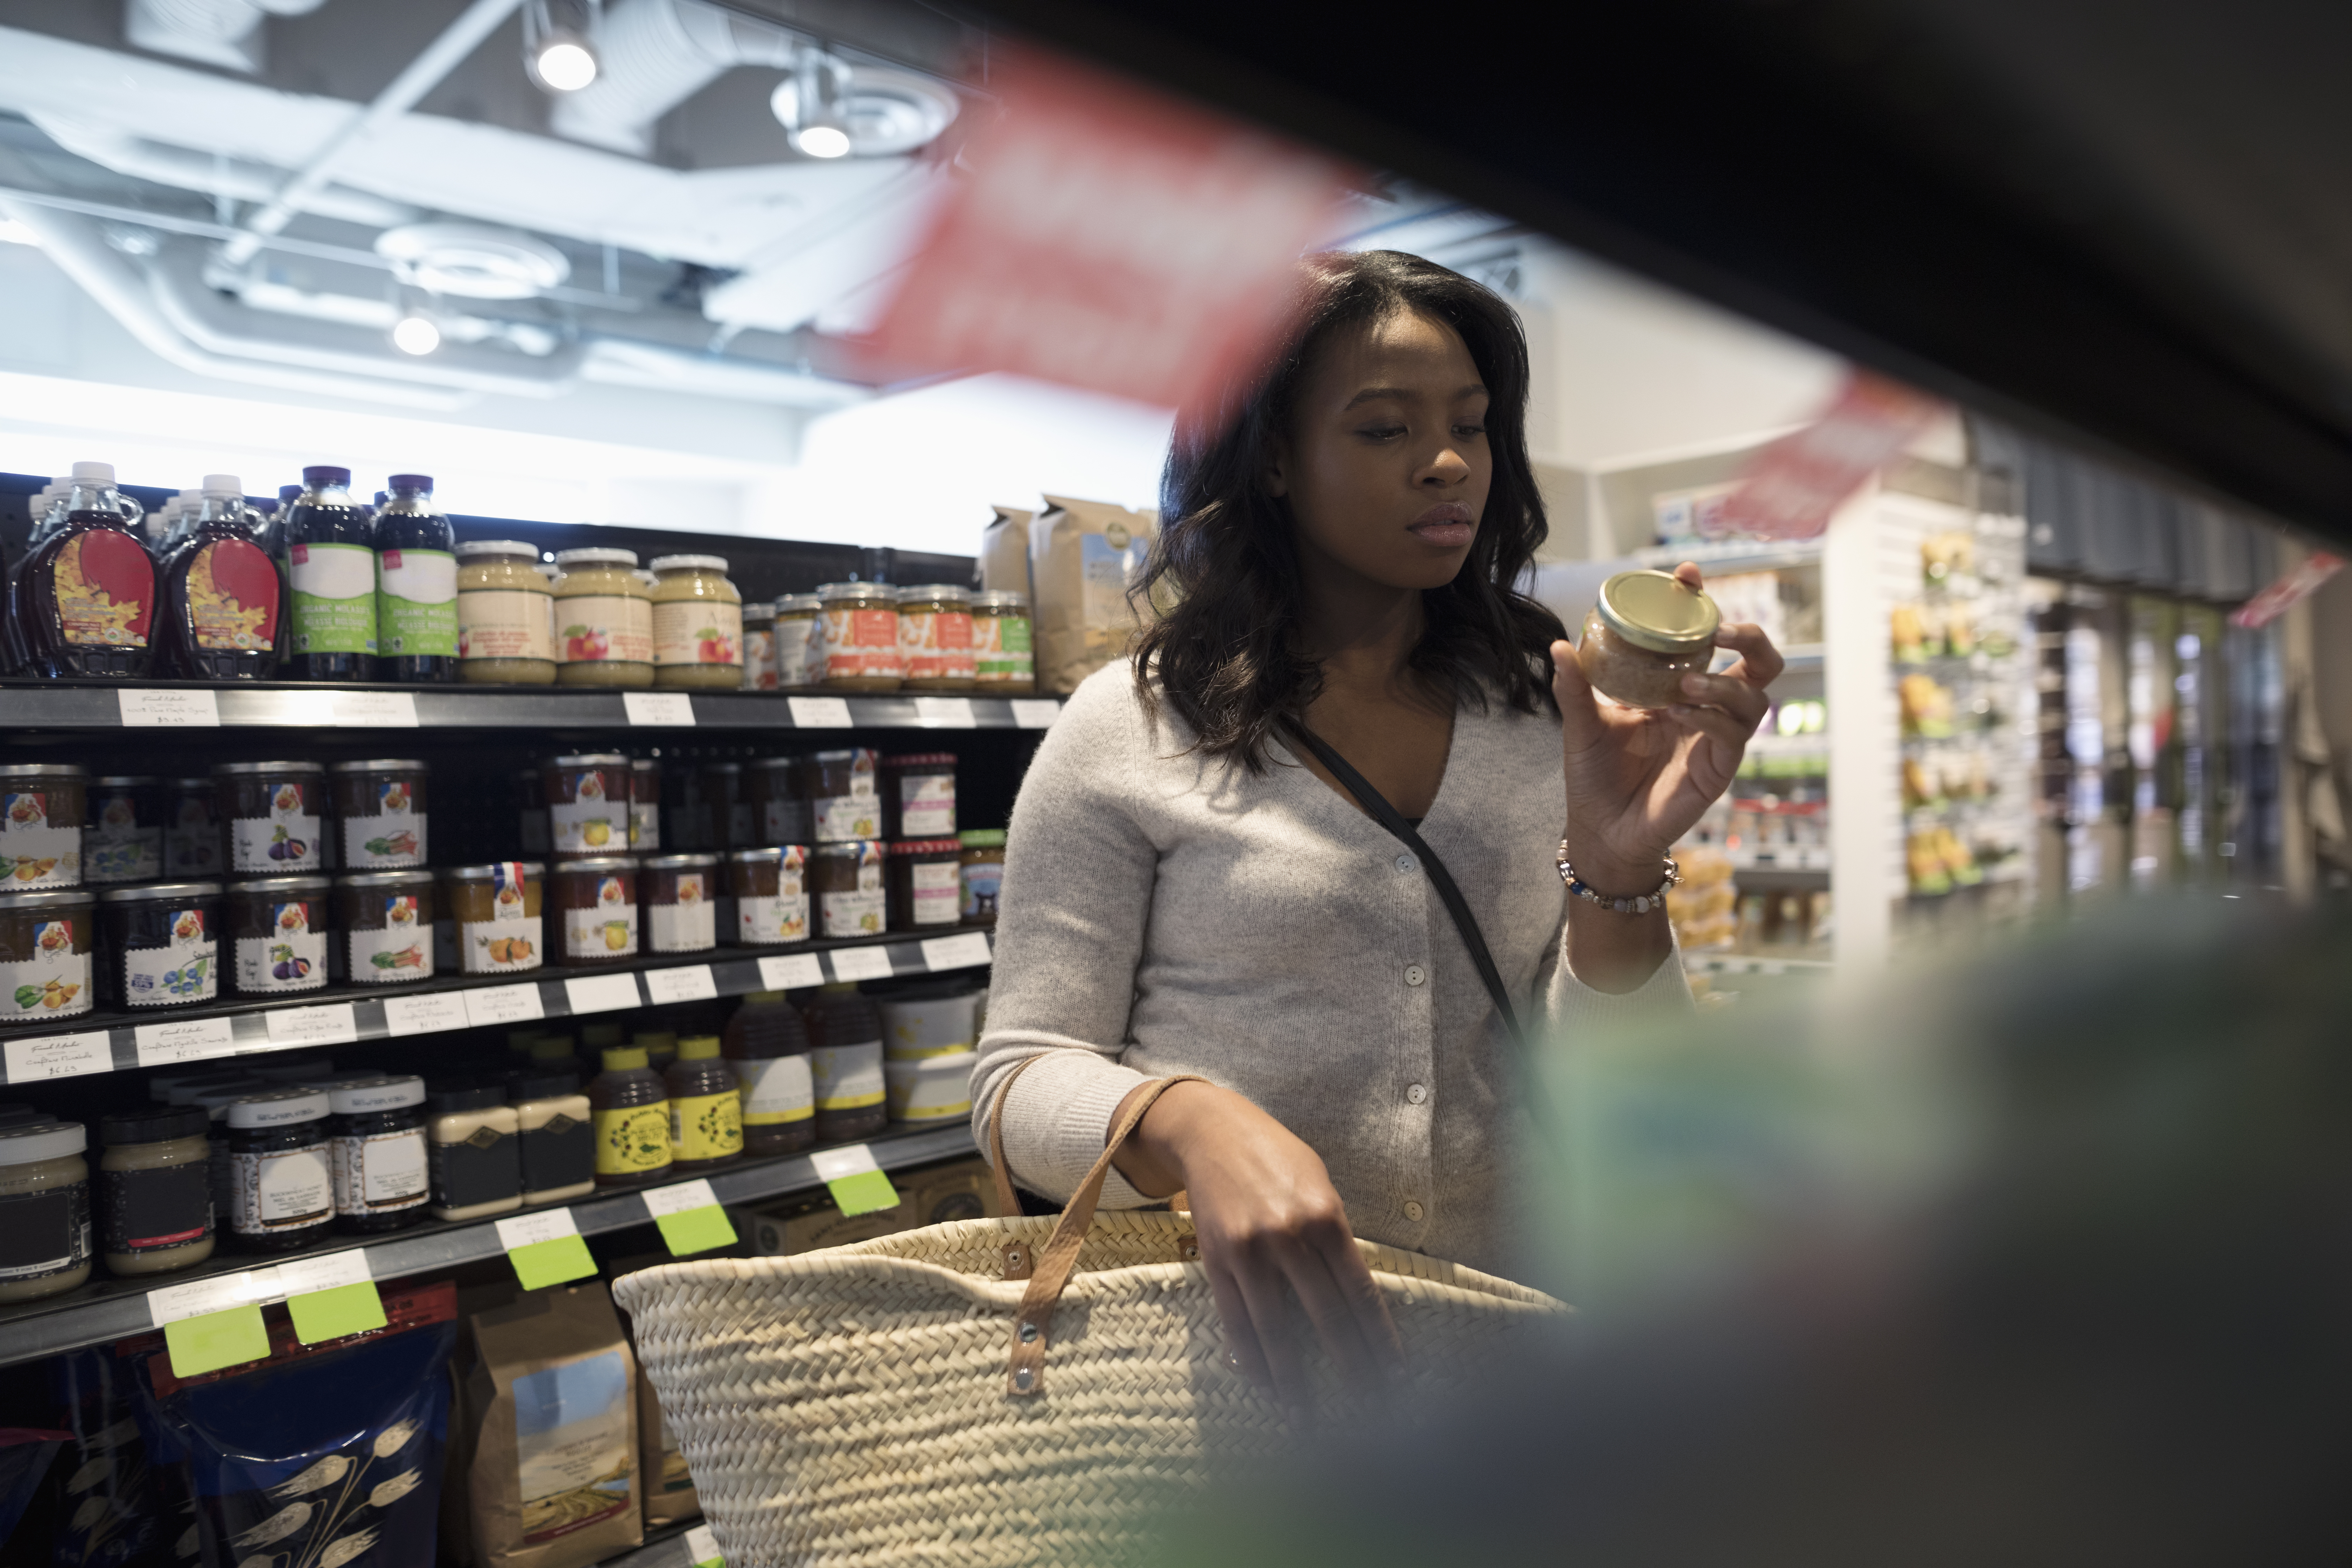 Black woman in grocery store